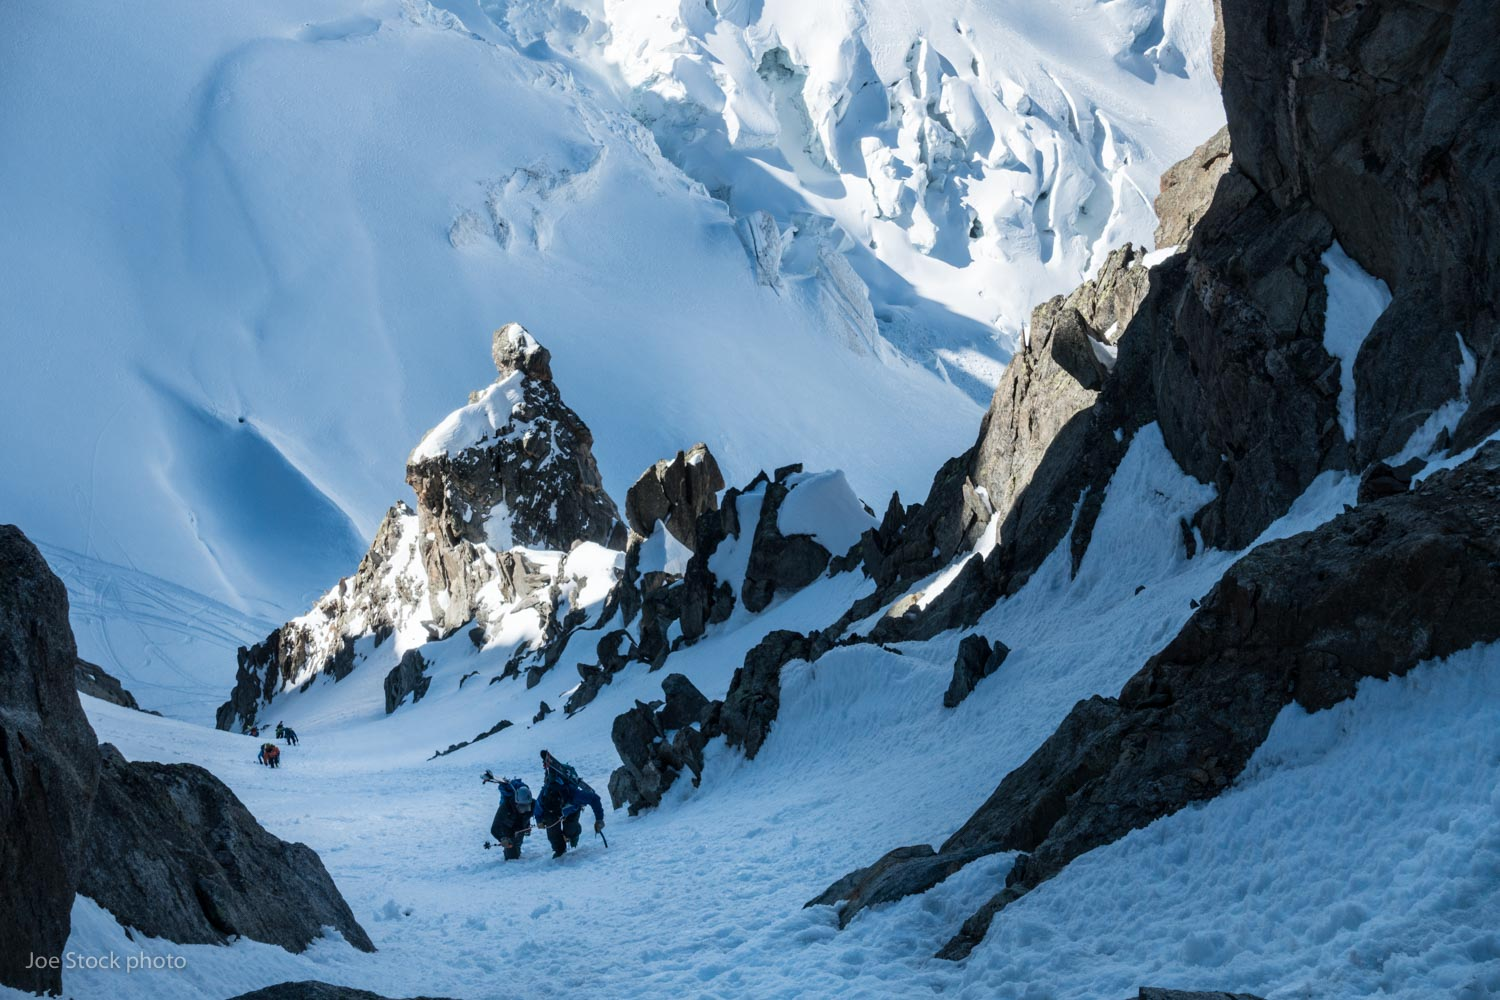 Eric Larson and Wily Forsyth climbing to the Breche Puiseux near Chamonix. I spent a most of March working with the Anchorage 212th pararescue team. We trained in Southcentral Alaska and honed skills in Chamonix. Fun guys!